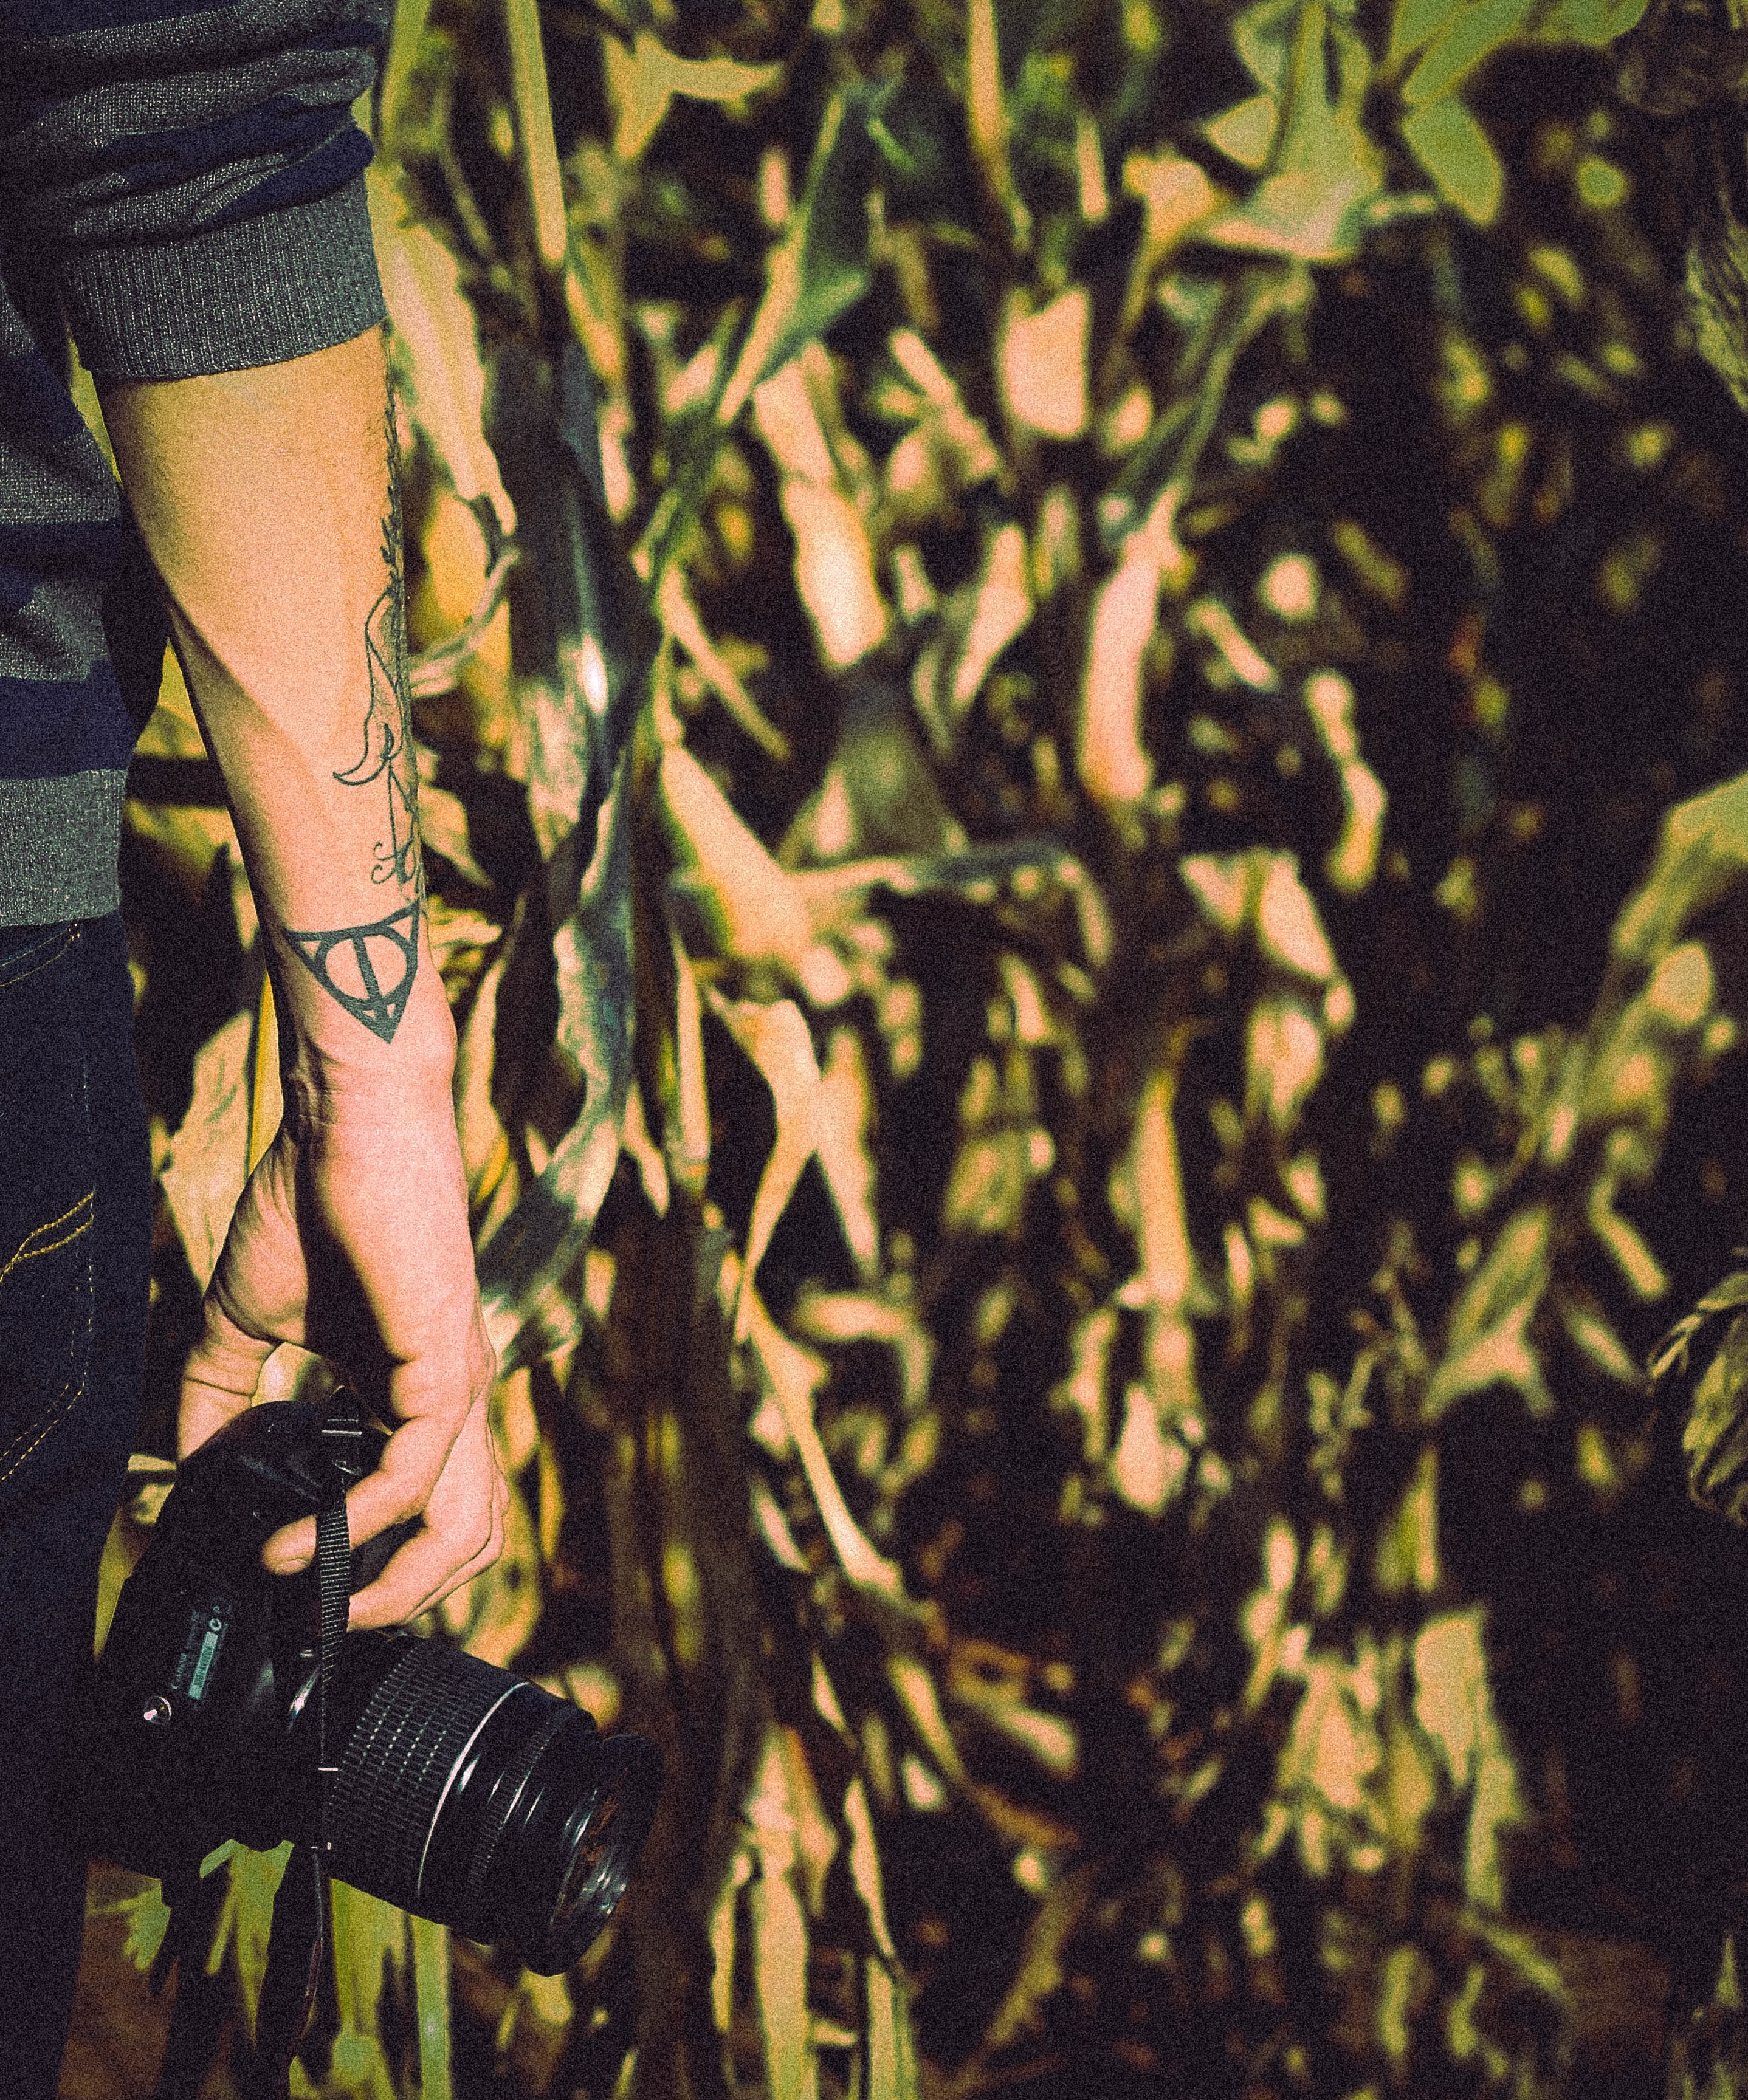 Tattooed photographer standing in front of a cornfield holding his DSLR camera in the sunshine